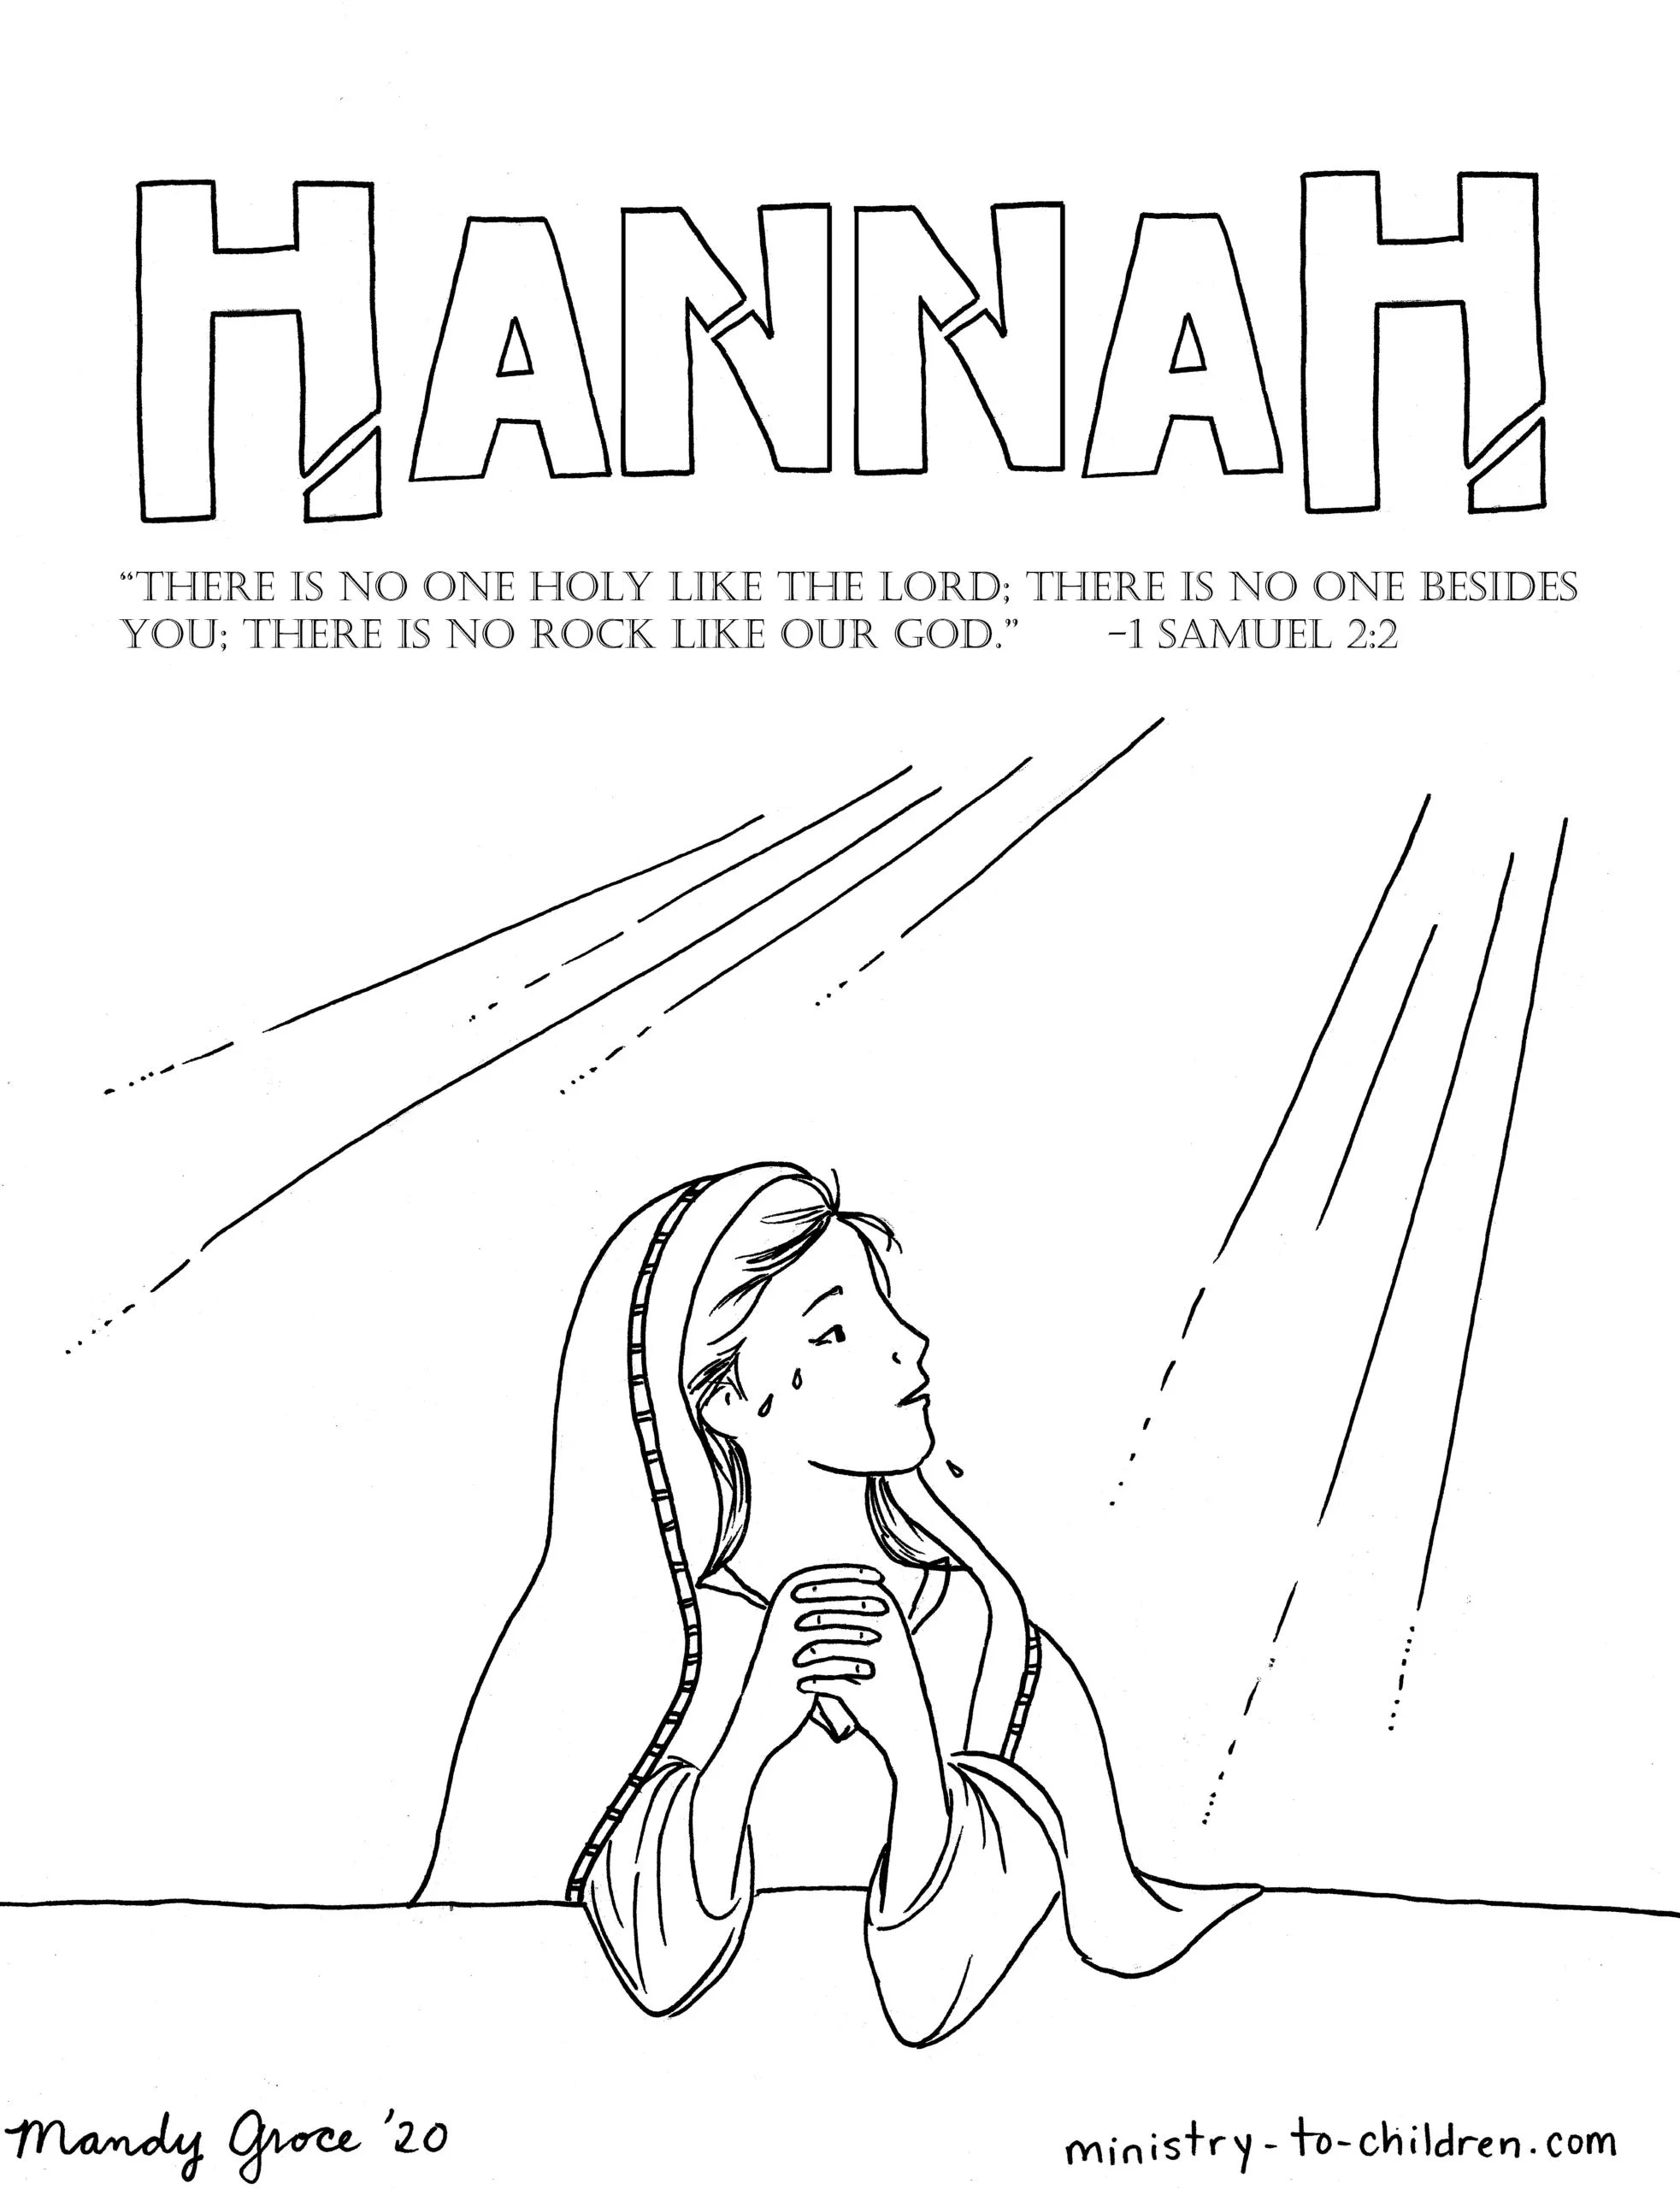 Samuel Coloring Pages : samuel, coloring, pages, Hannah, Coloring, Ministry-To-Children